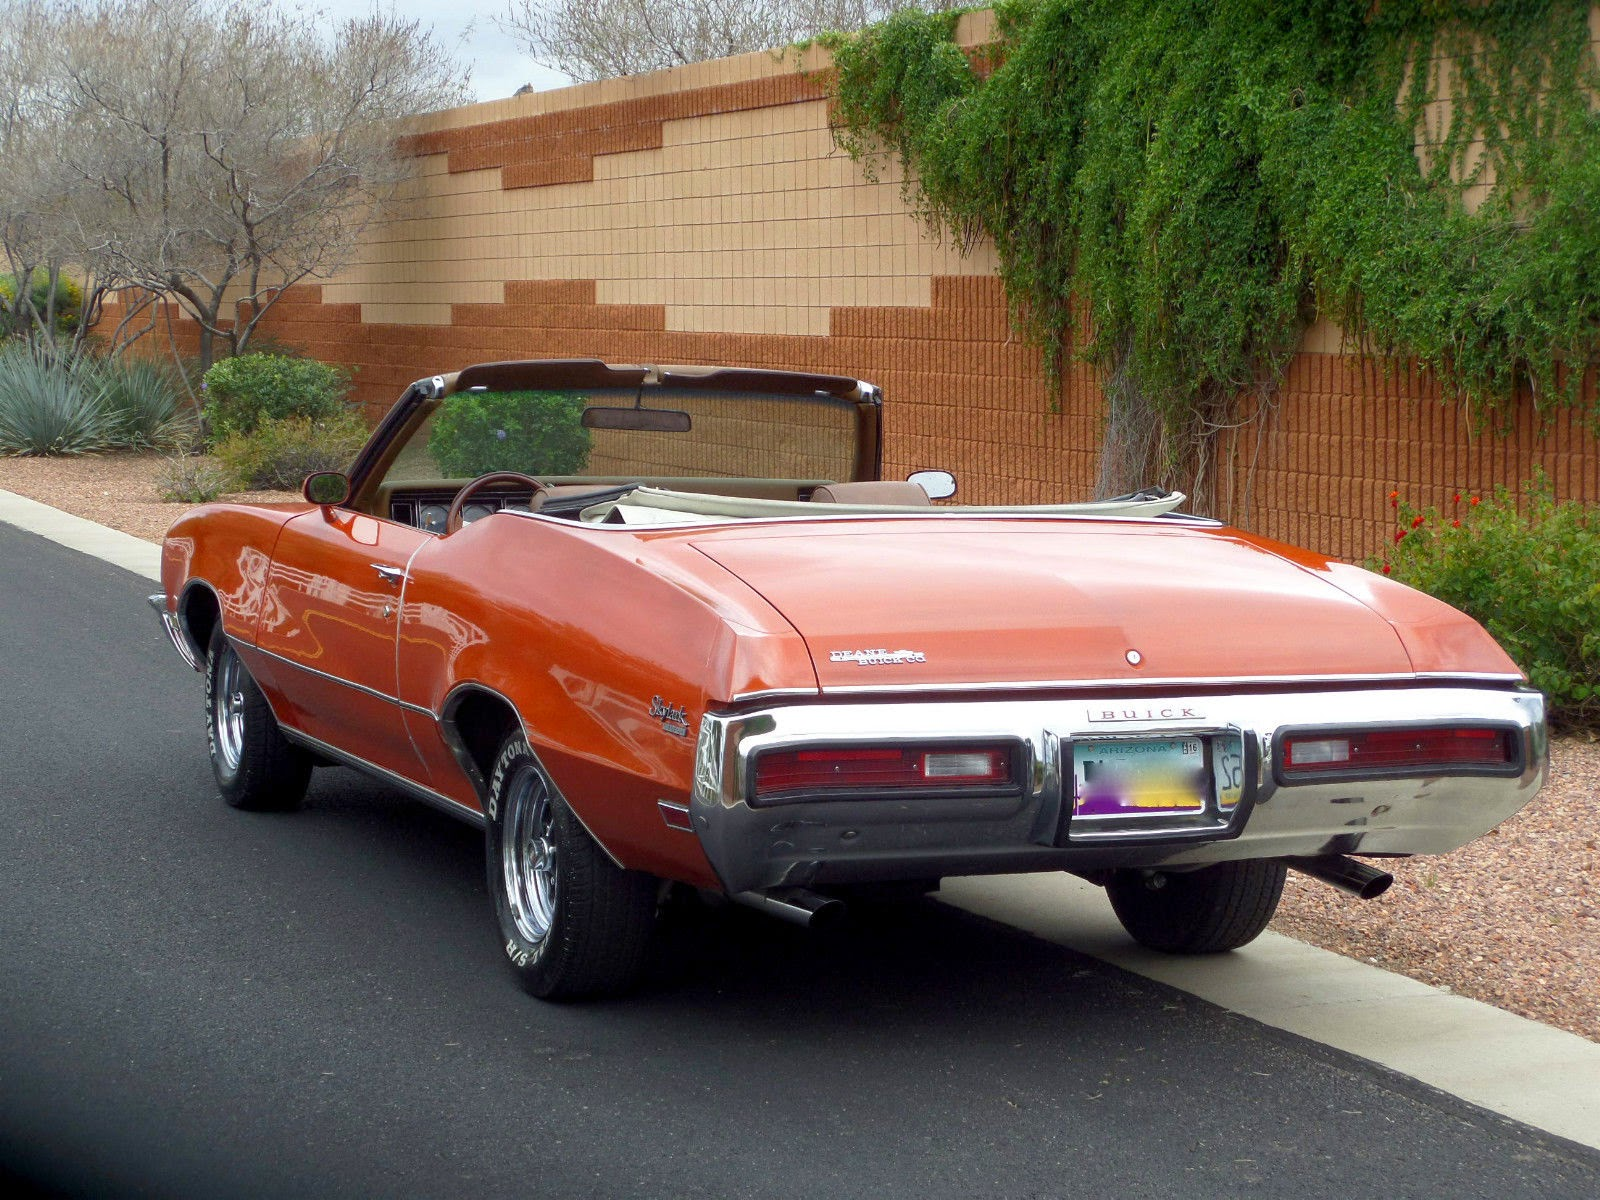 Watch in addition File Chevrolet Citation II front additionally List Classic American Muscle Cars also File Buick Skyhawk   09 28 2009 furthermore Pontiac LeMans. on 1978 buick skylark